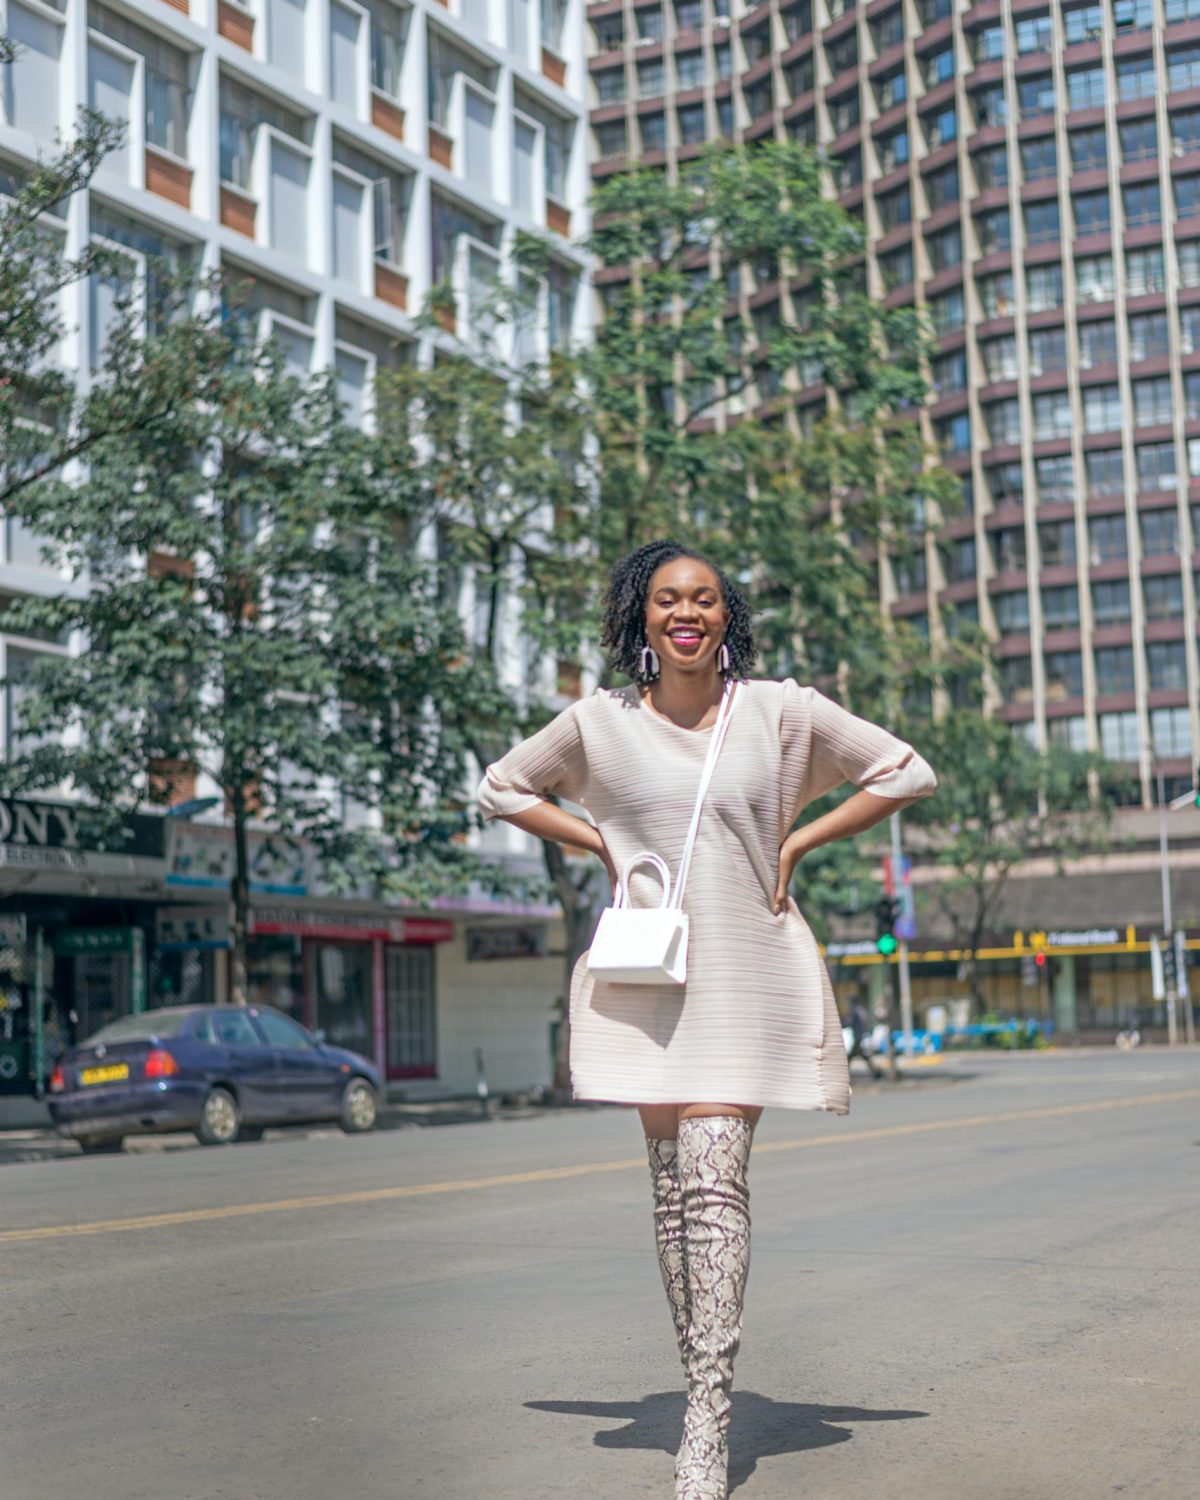 Ijeoma Kola posing with hands on hips in the streets of Nairobi wearing cream mid-sleeve dress, white shoulder sling bag and snake skin thigh high boots - Blog on how to make extra money